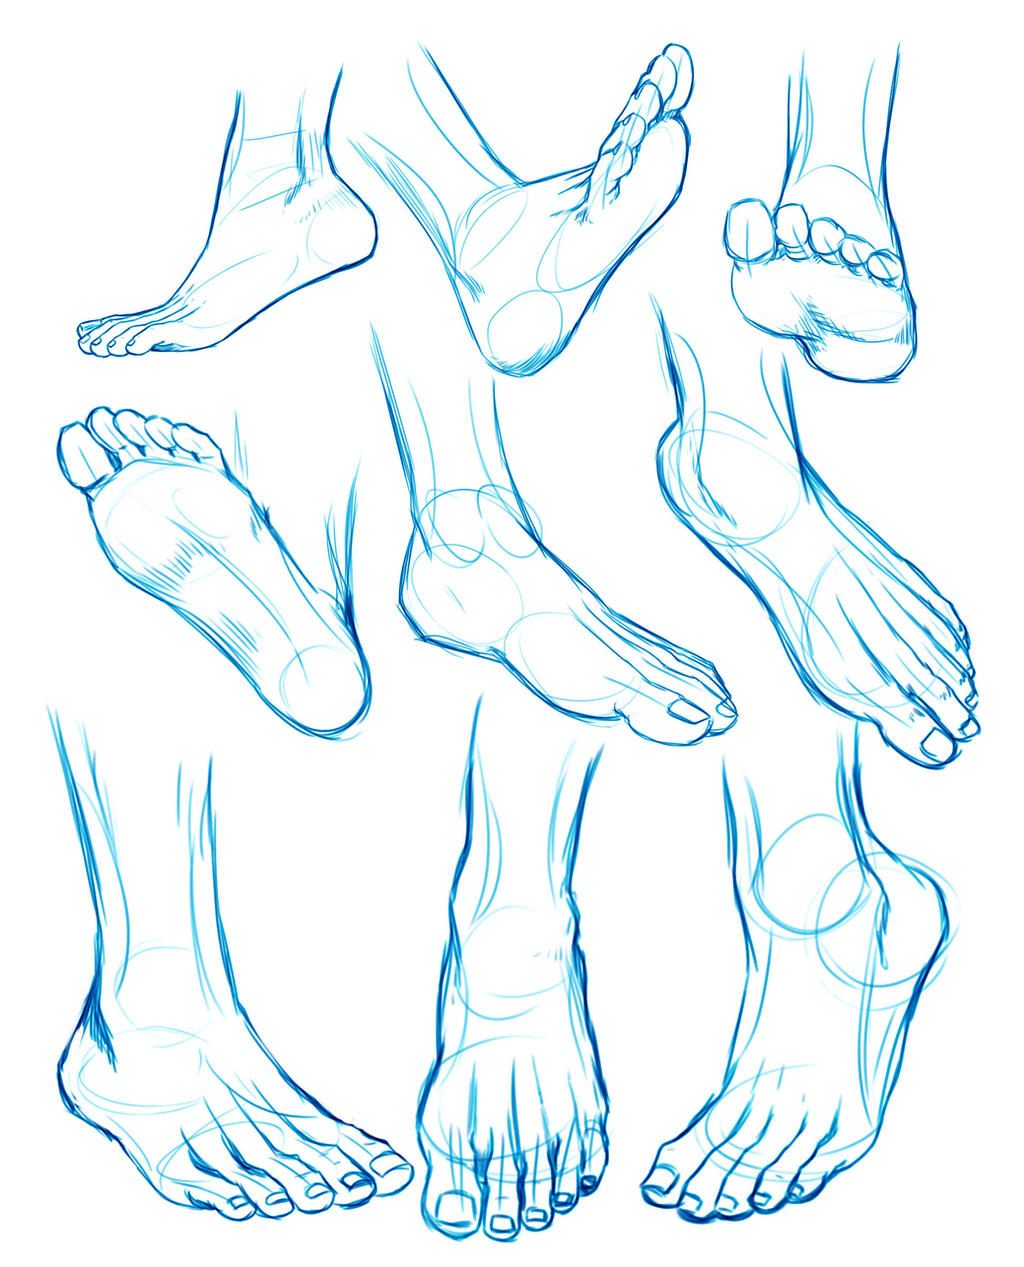 FEET sketches by Washu-M